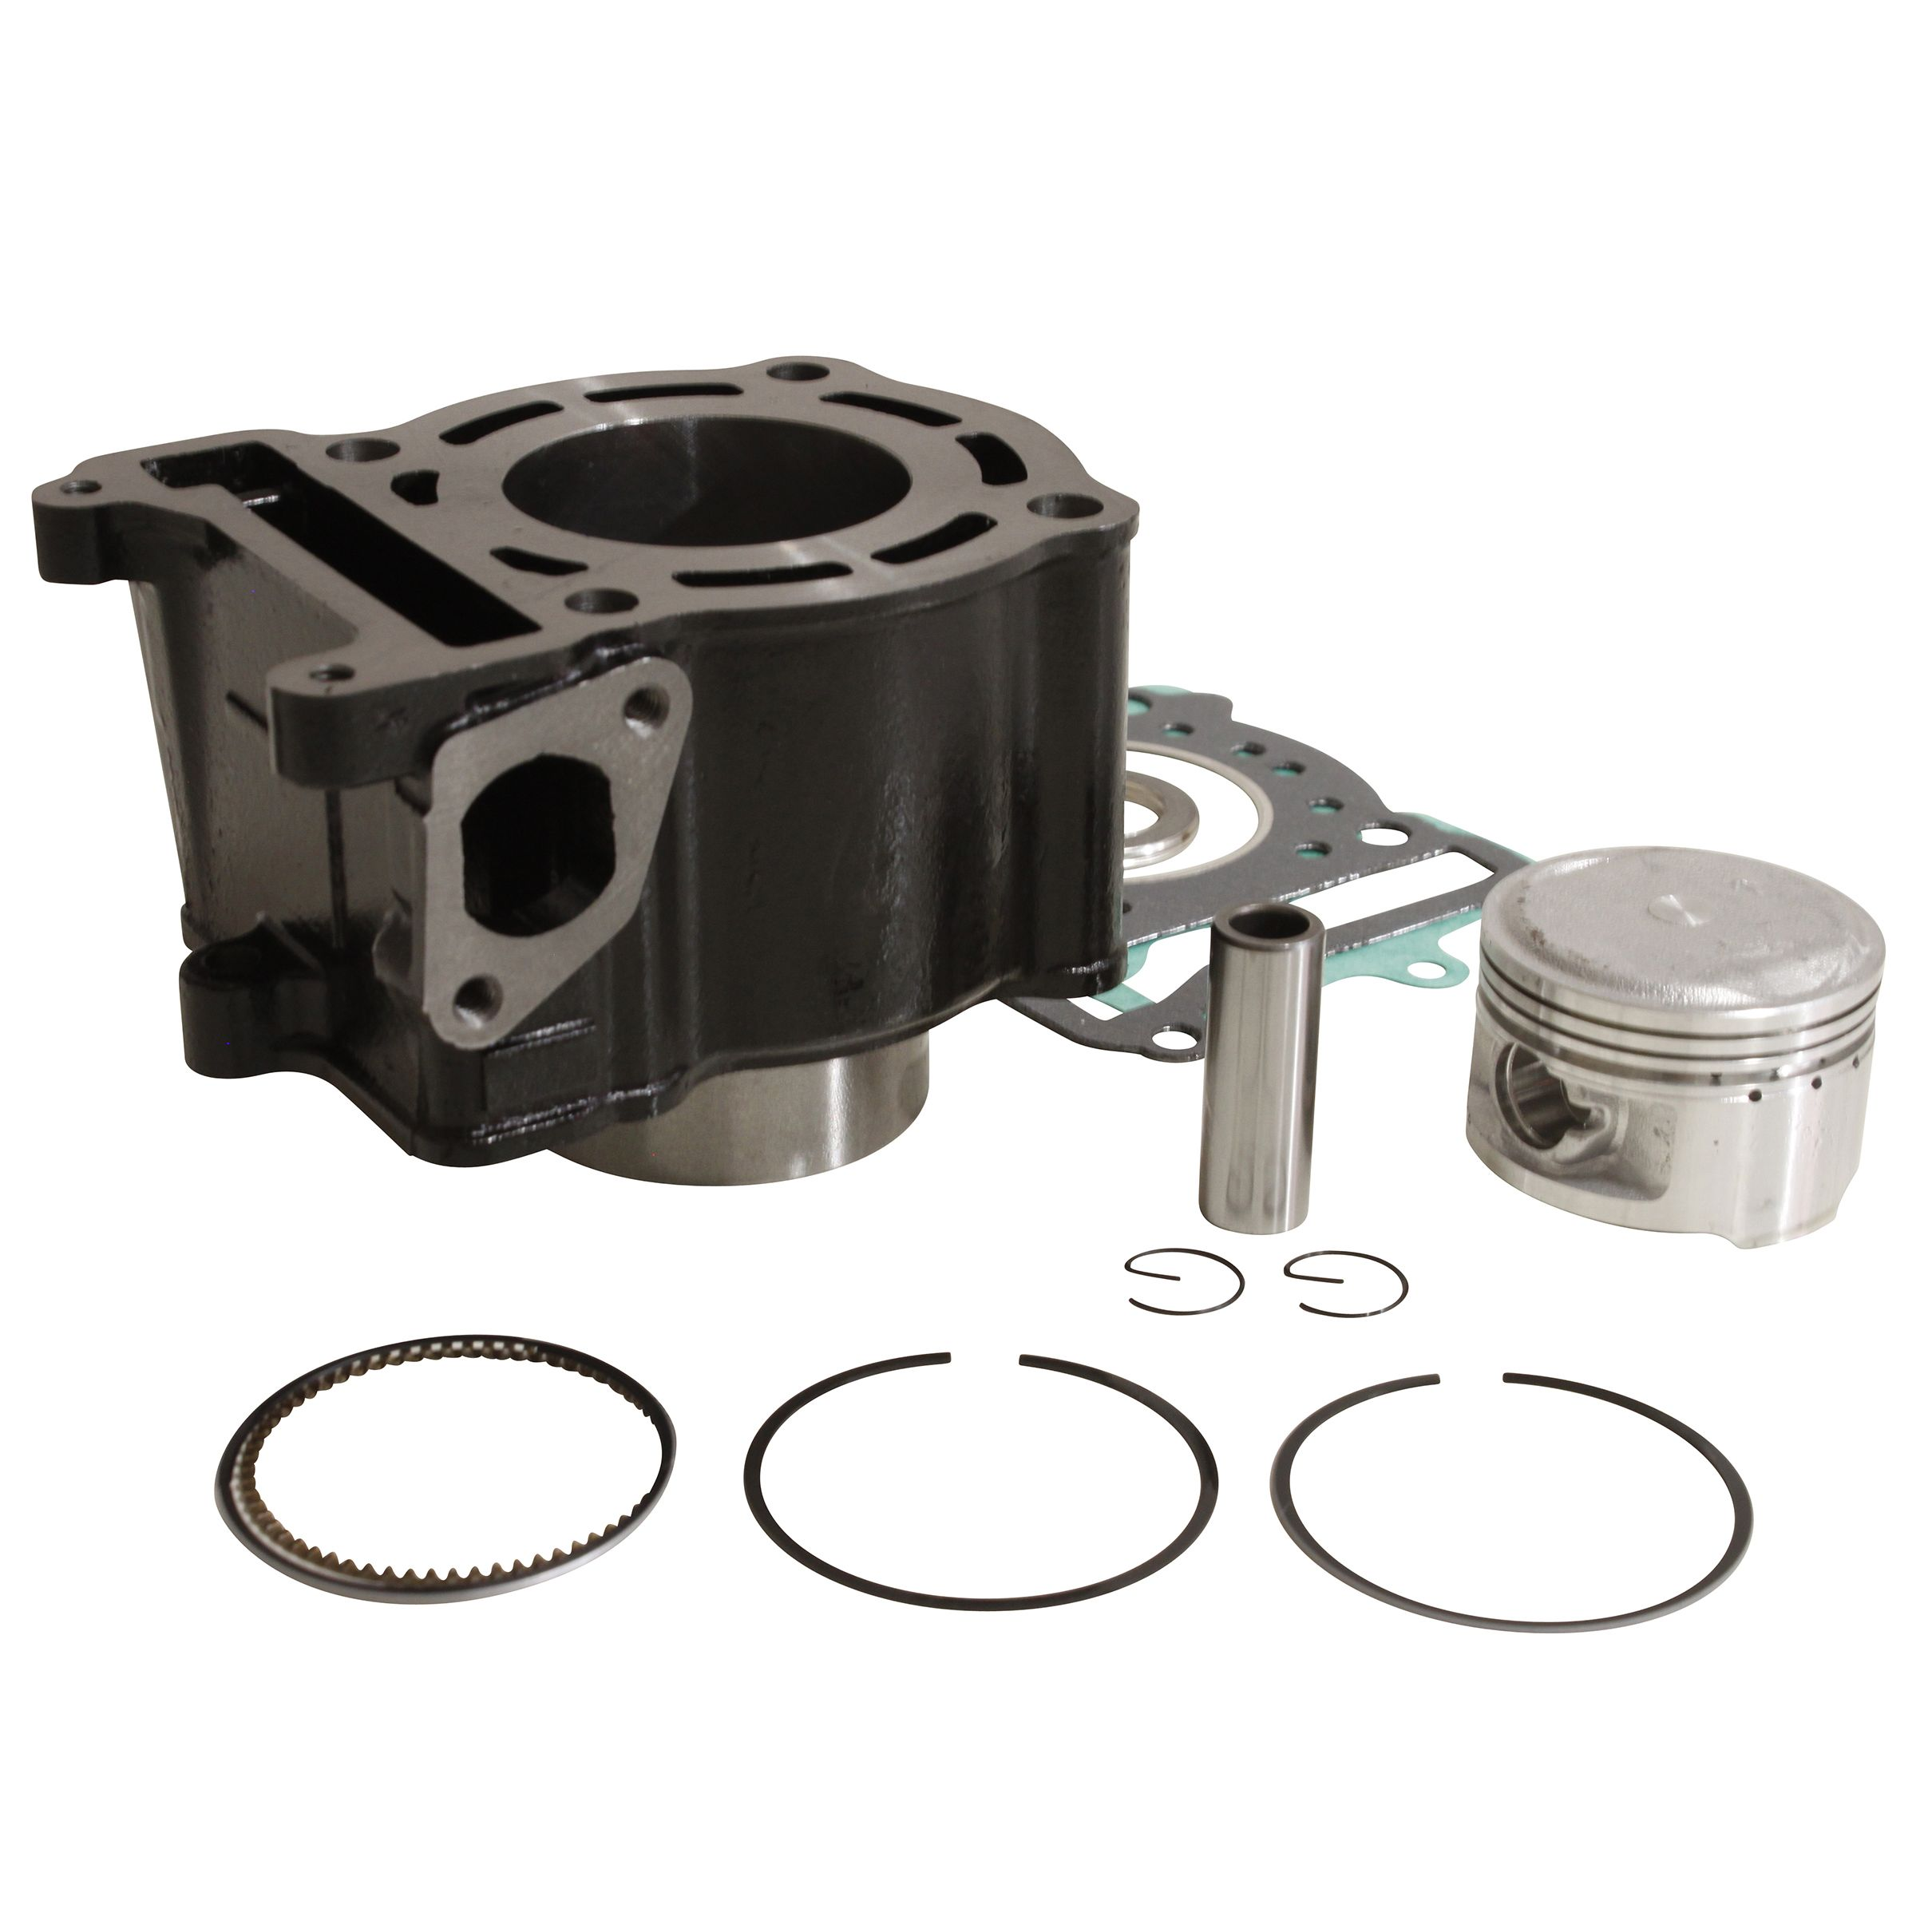 Kit cylindre-piston P2R adaptable diam 53.7 mm